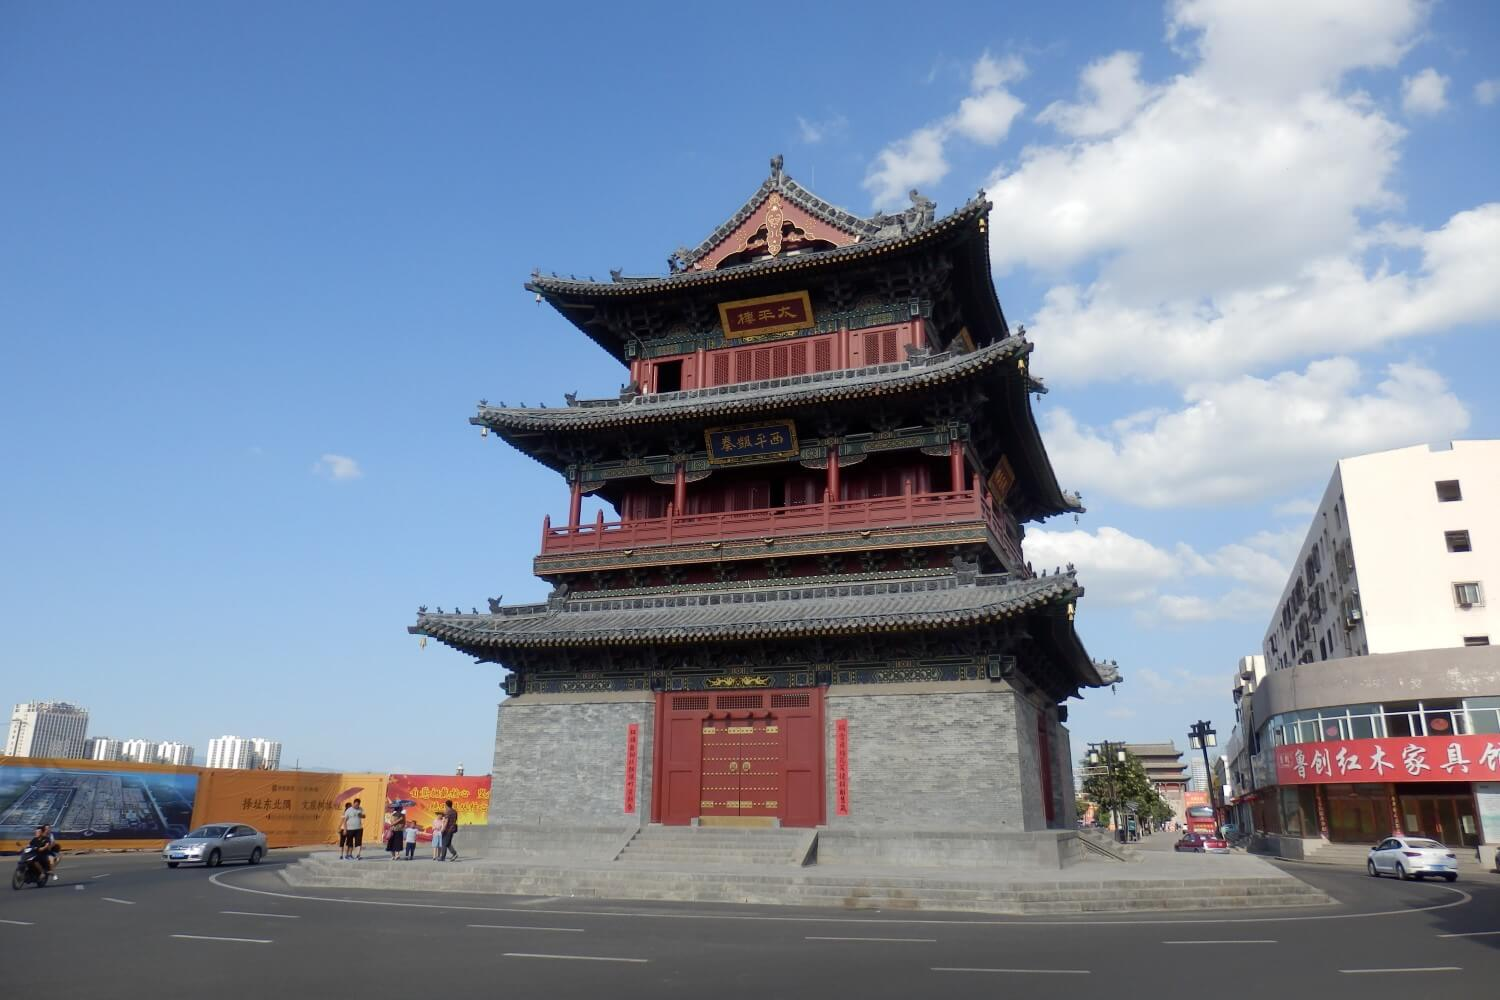 Old tower in de city center of Datong, China